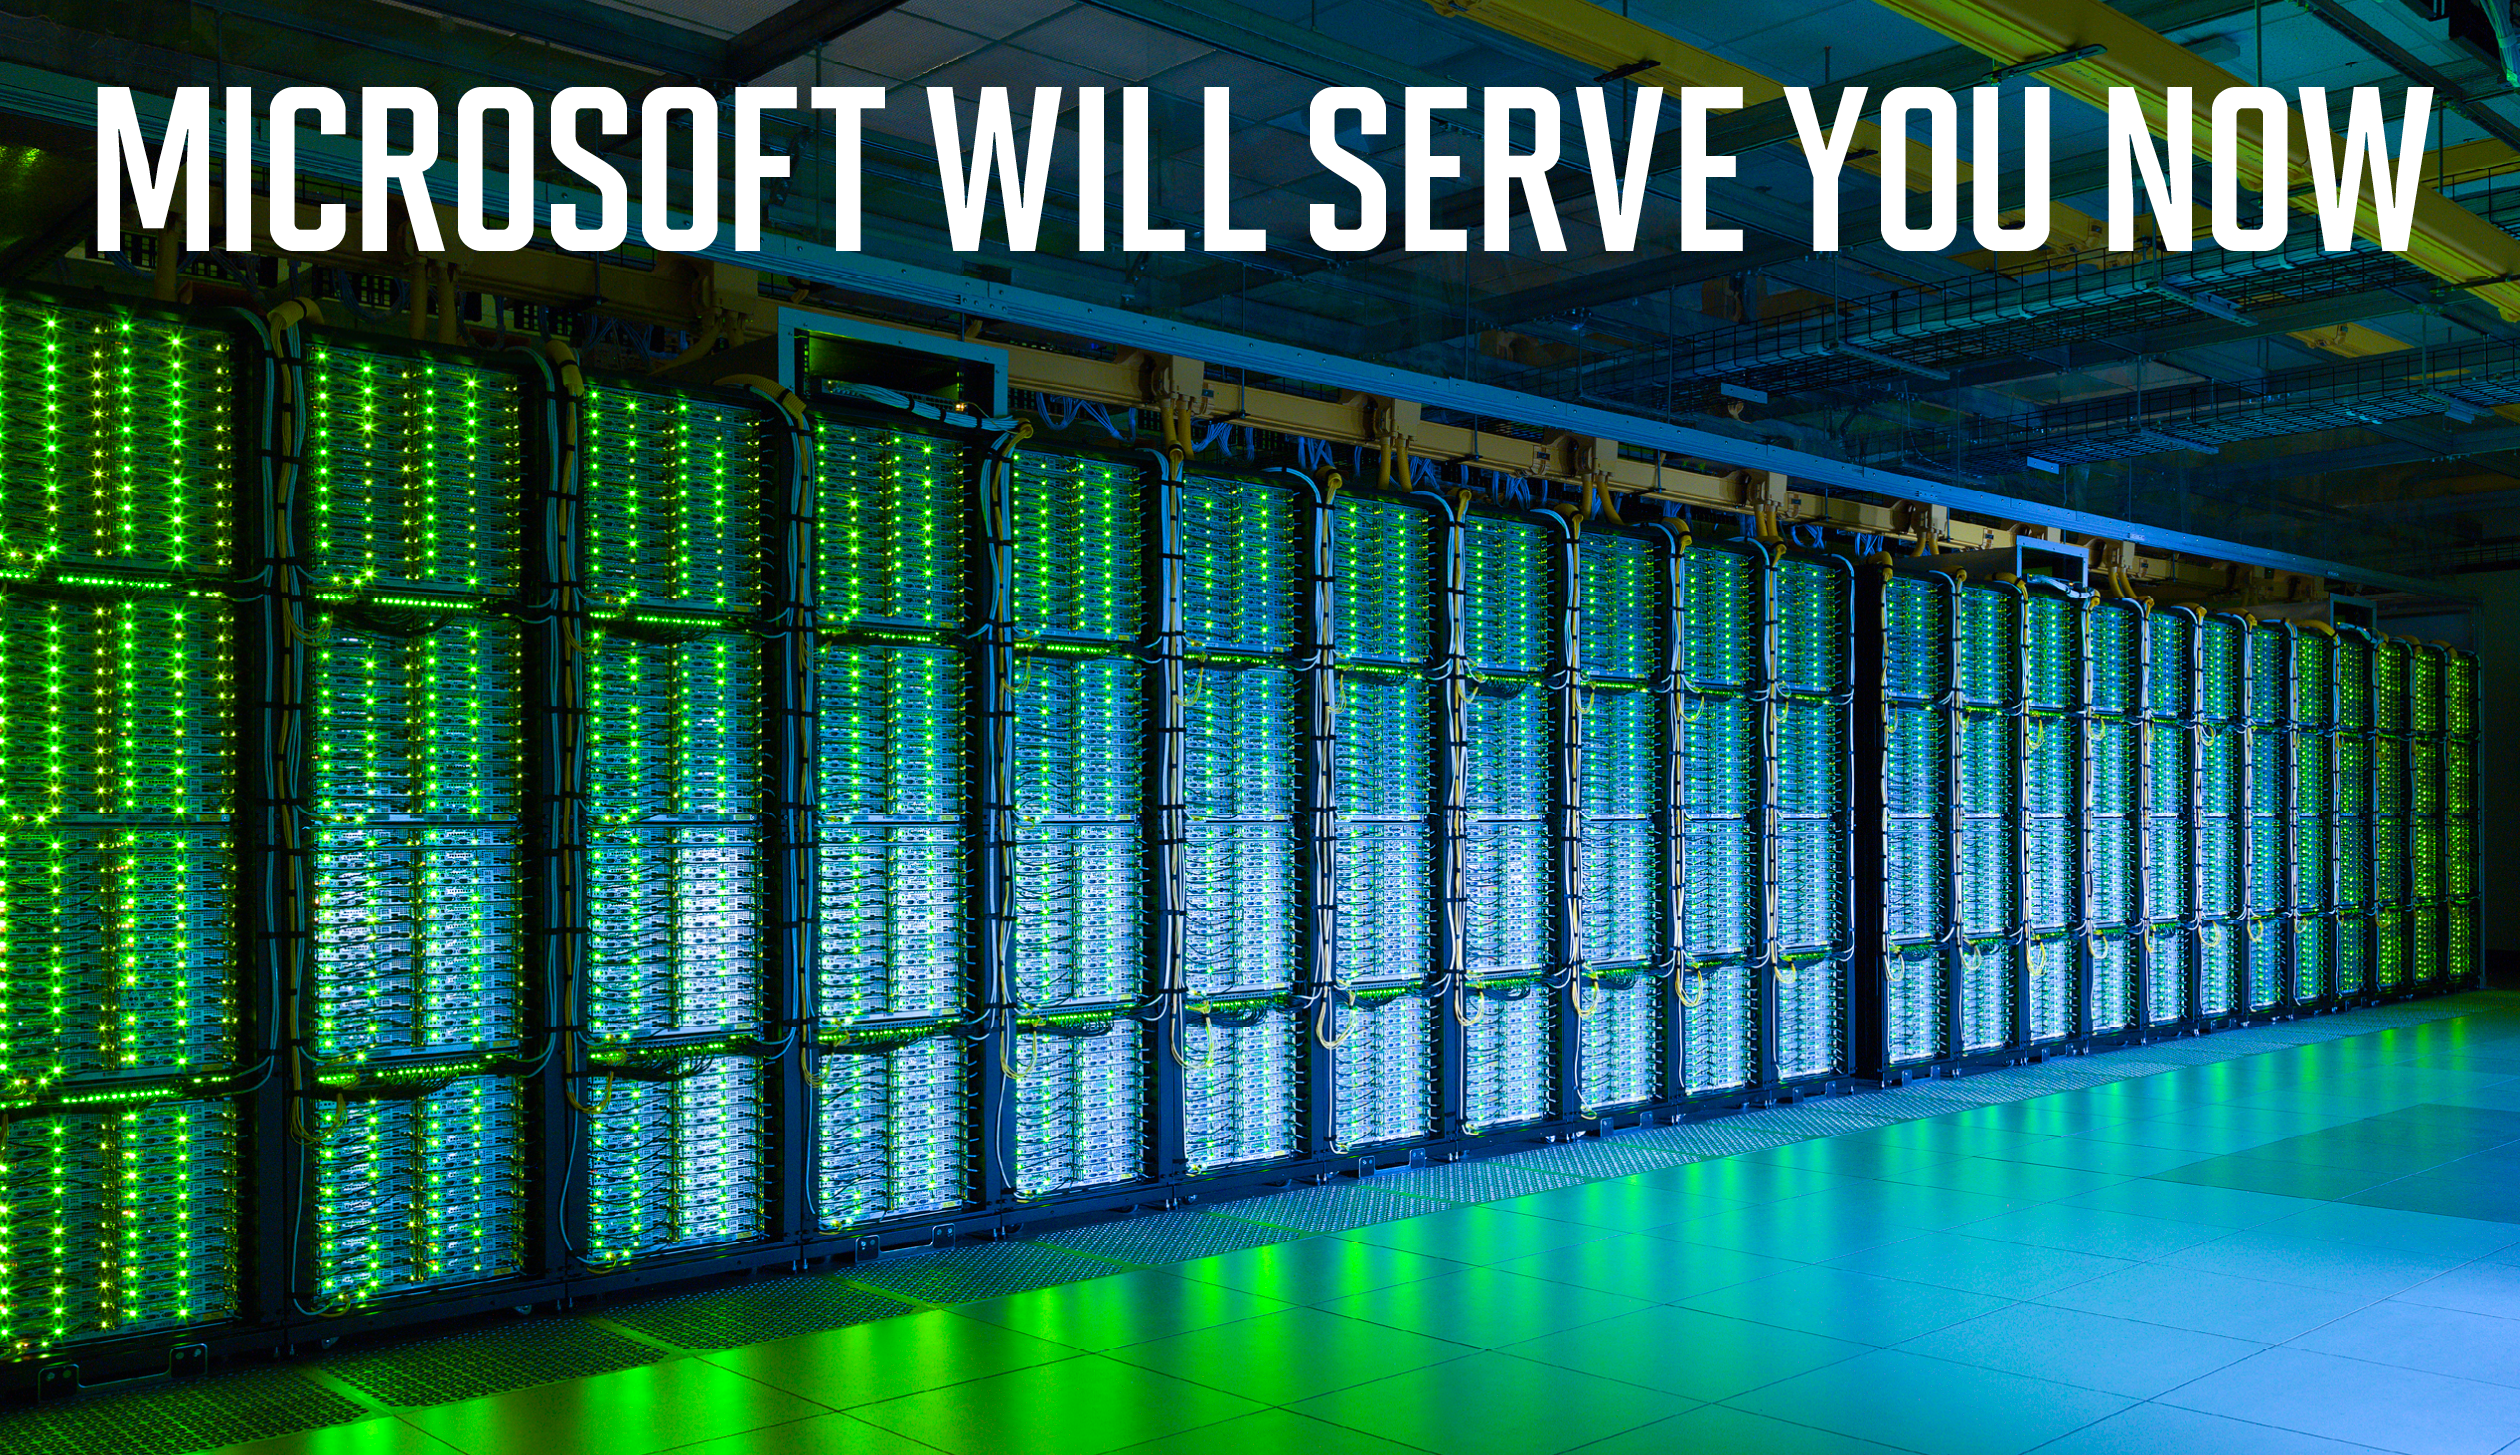 A Healthy Glow: Microsoft data centers, like this one in central Washington state, are powered by over a million servers and form the backbone of services like Azure, Office 365, and Xbox Live.